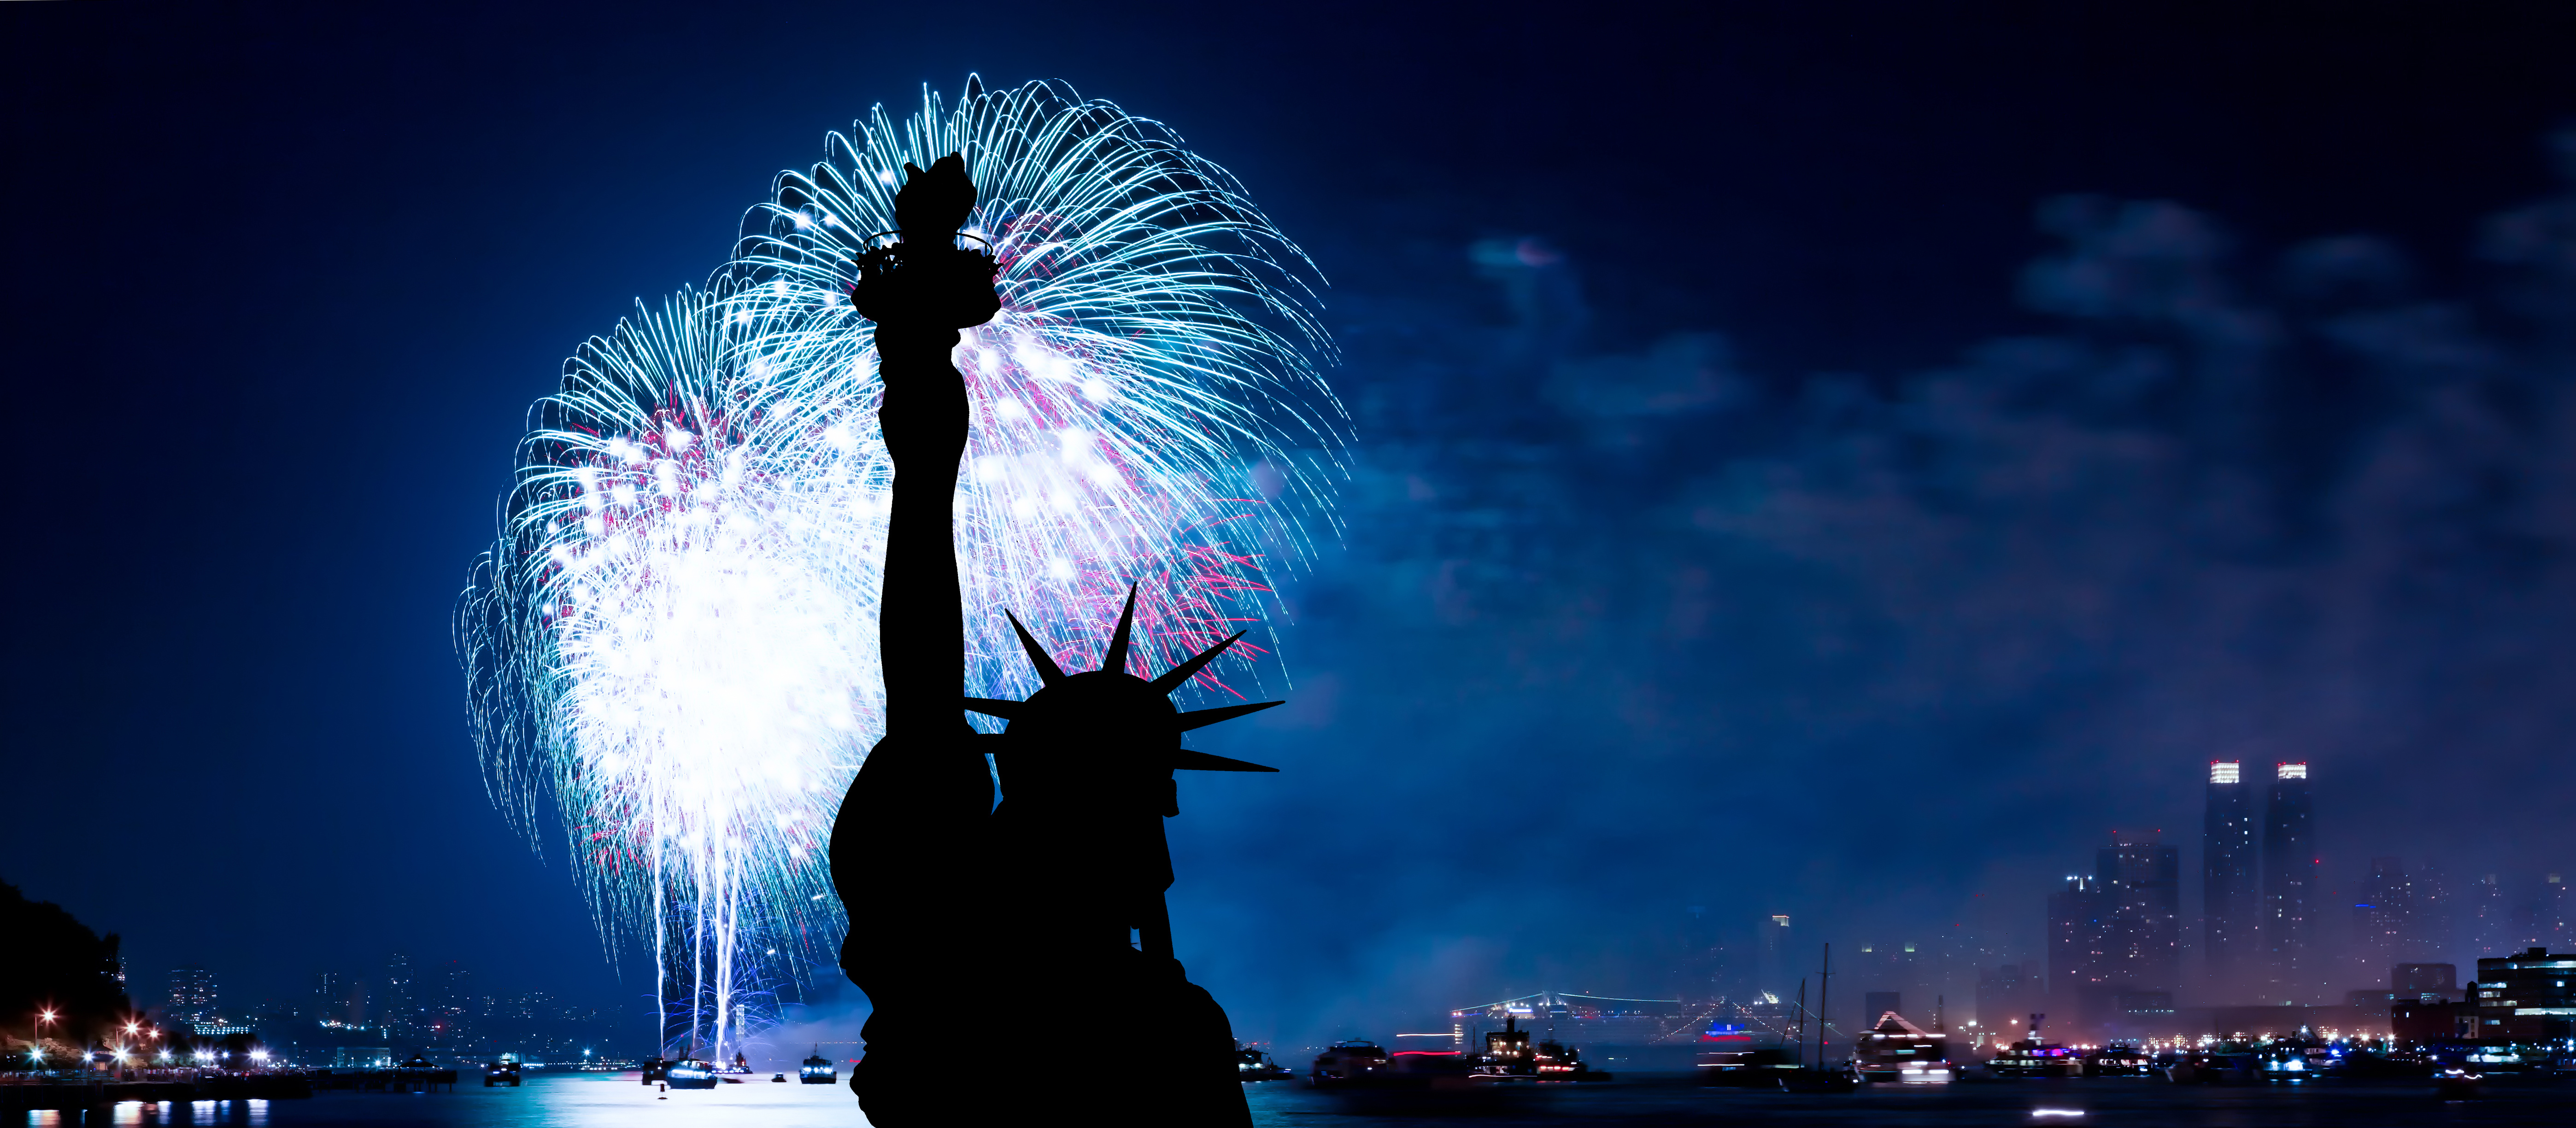 The Statue Of Liberty And July 4th Firework Sky Room Nyc